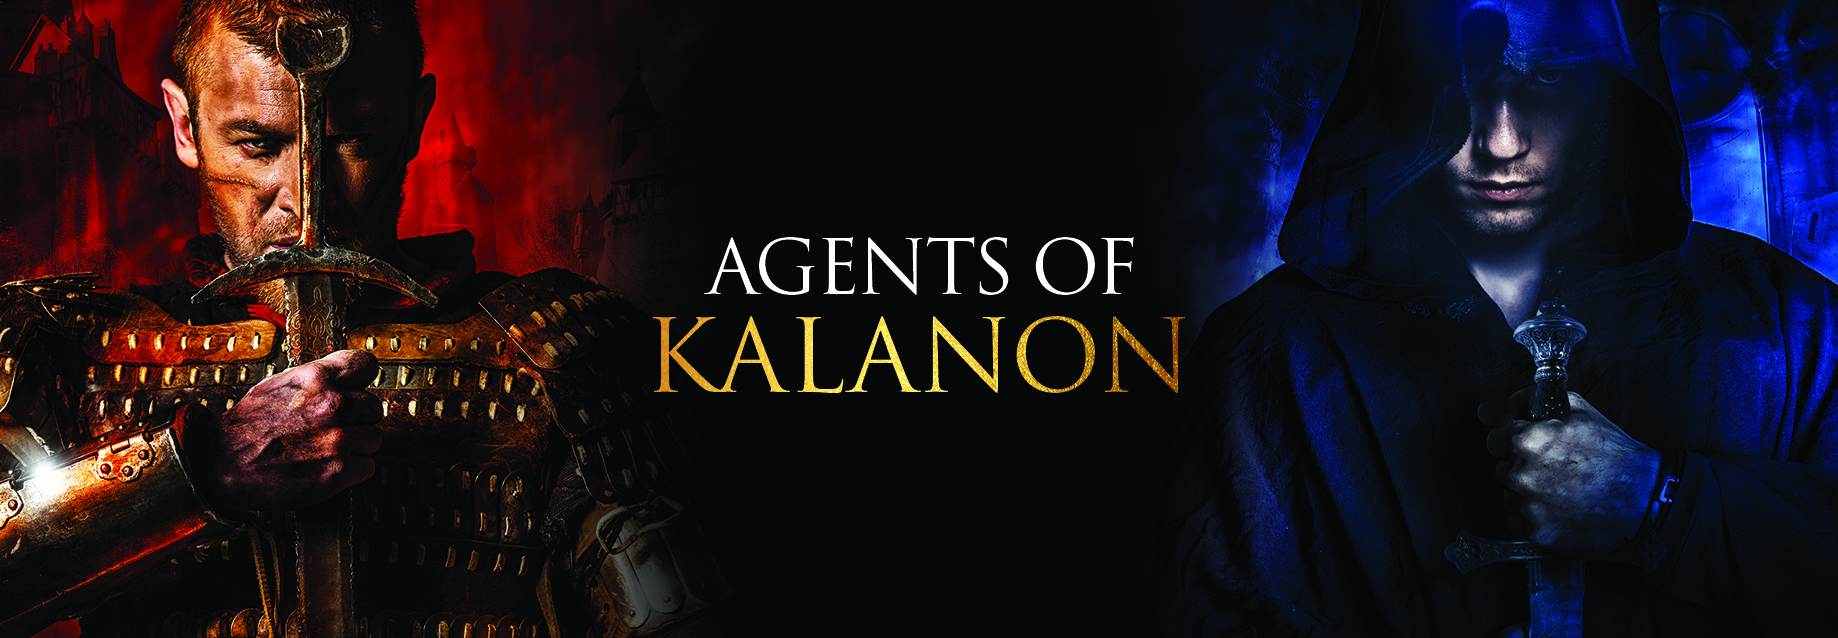 Agents of Kalanon web